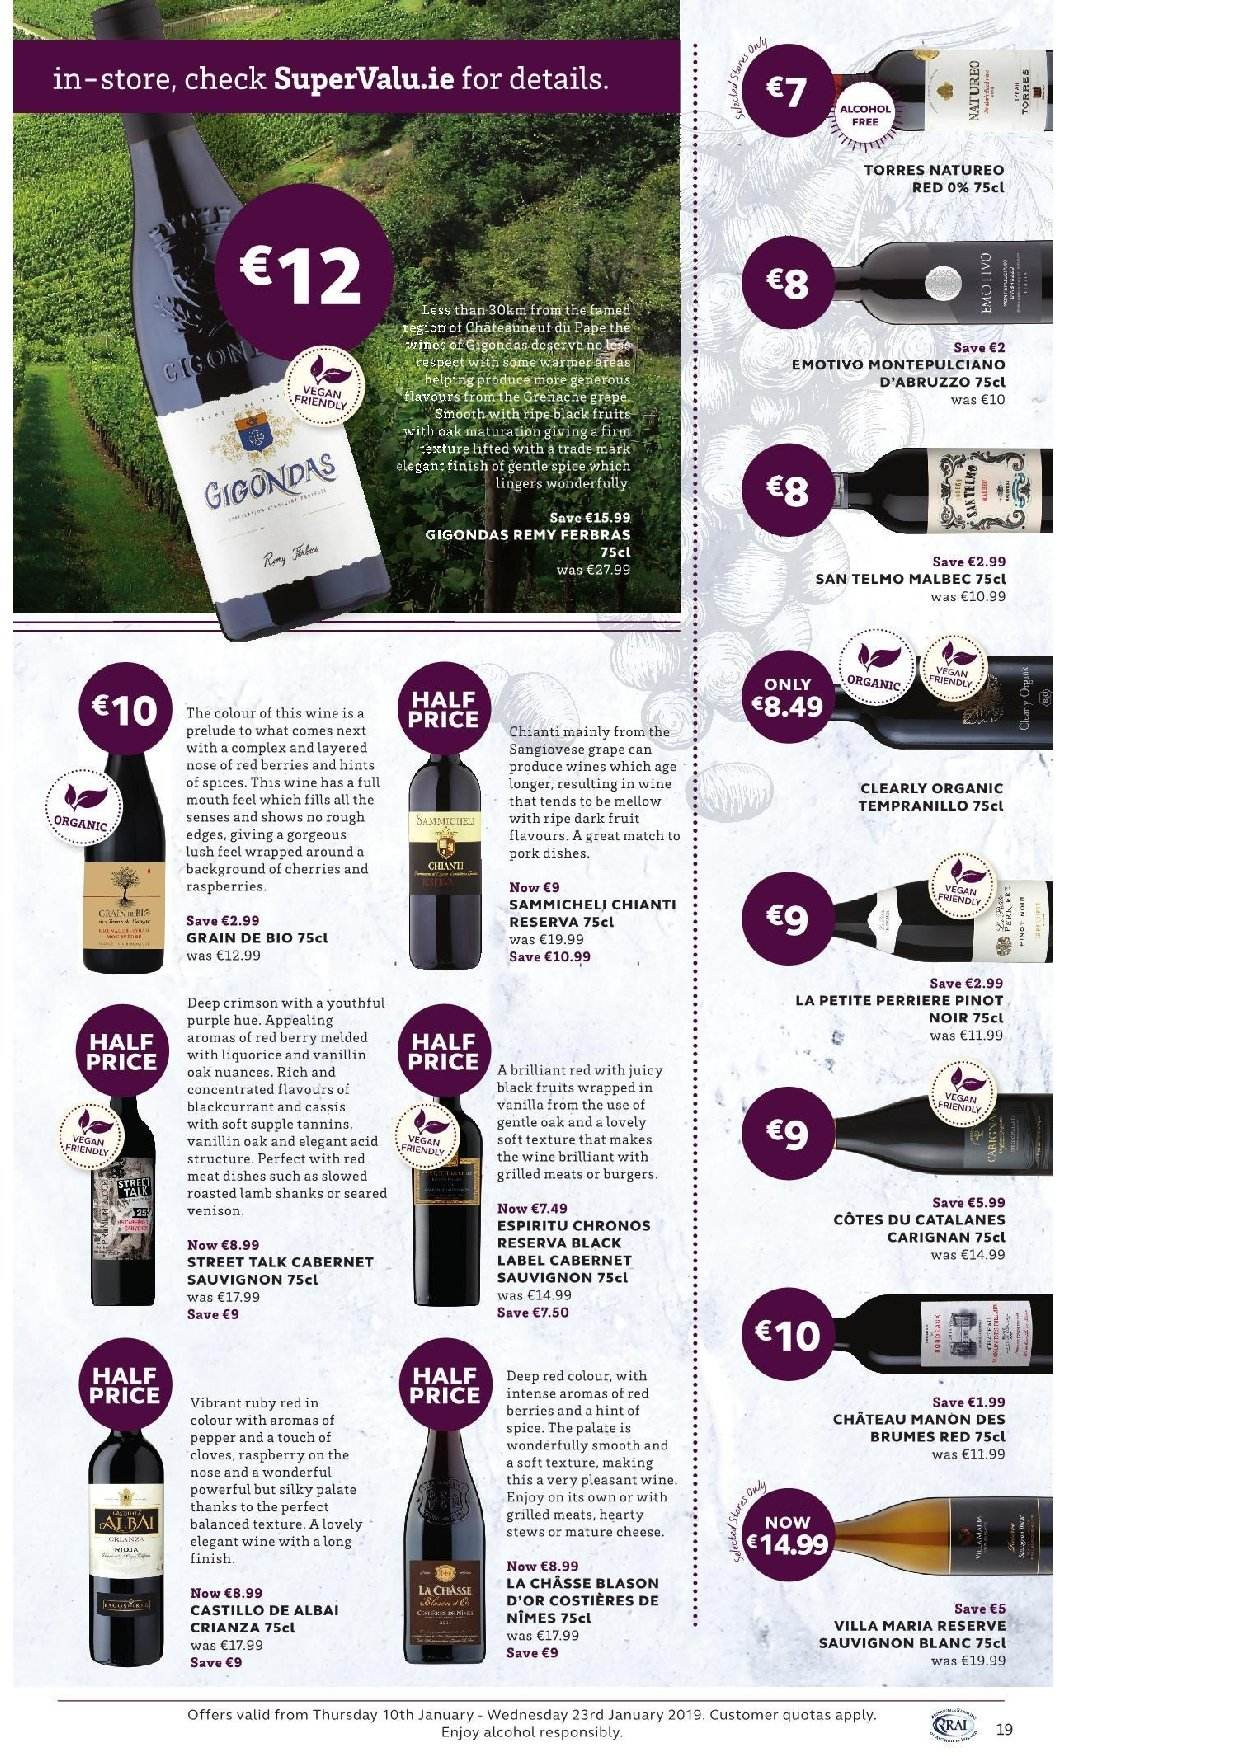 SuperValu offer  - 10.1.2019 - 23.1.2019 - Sales products - cloves, Cabernet Sauvignon, wine, Clearly Organic, alcohol, Sauvignon Blanc, lamb meat. Page 37.